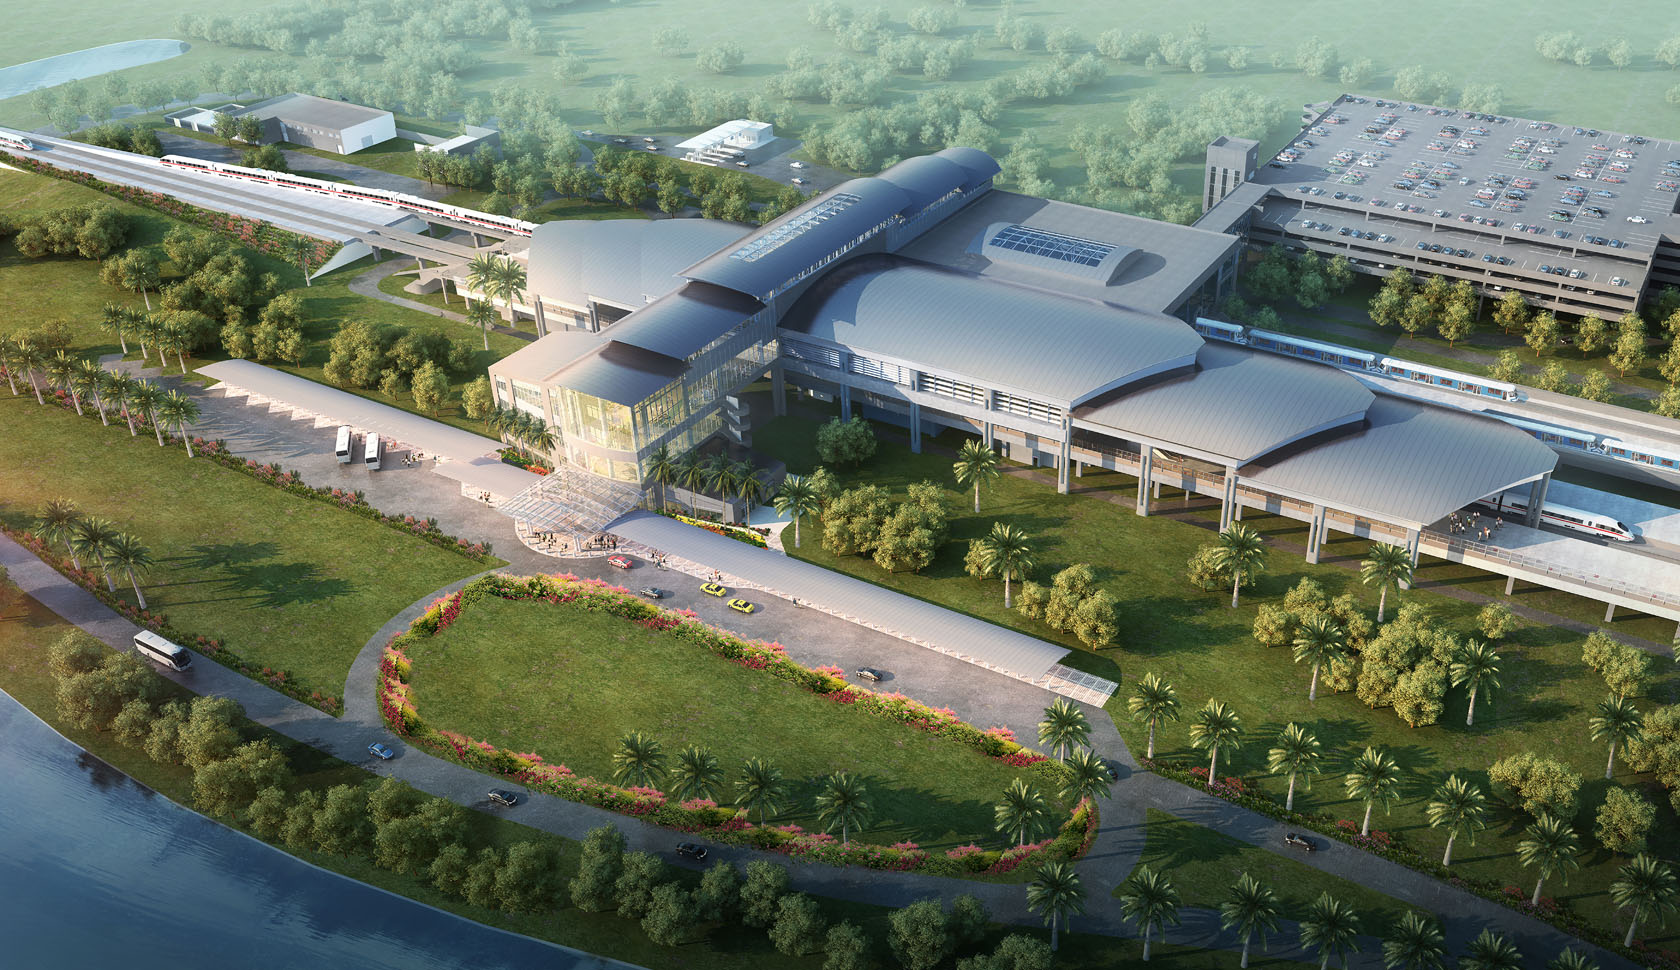 A rendering of a potential railway station to be built as part of All Aboard Florida's passenger rail